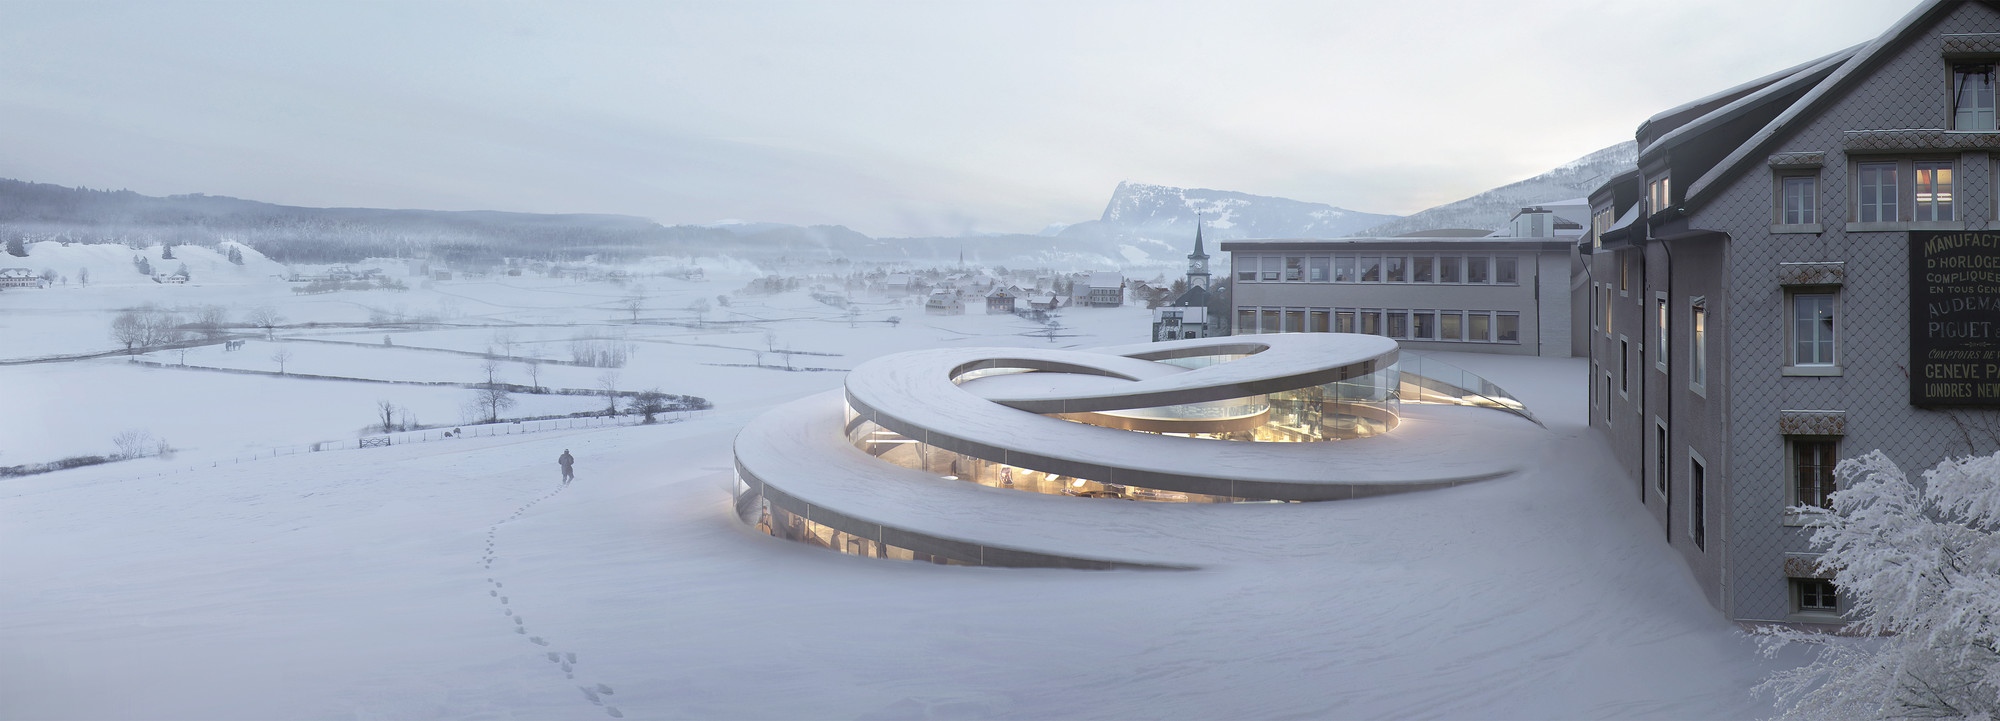 BIG Designs Spiralling Museum for Swiss Watchmaker, © BIG